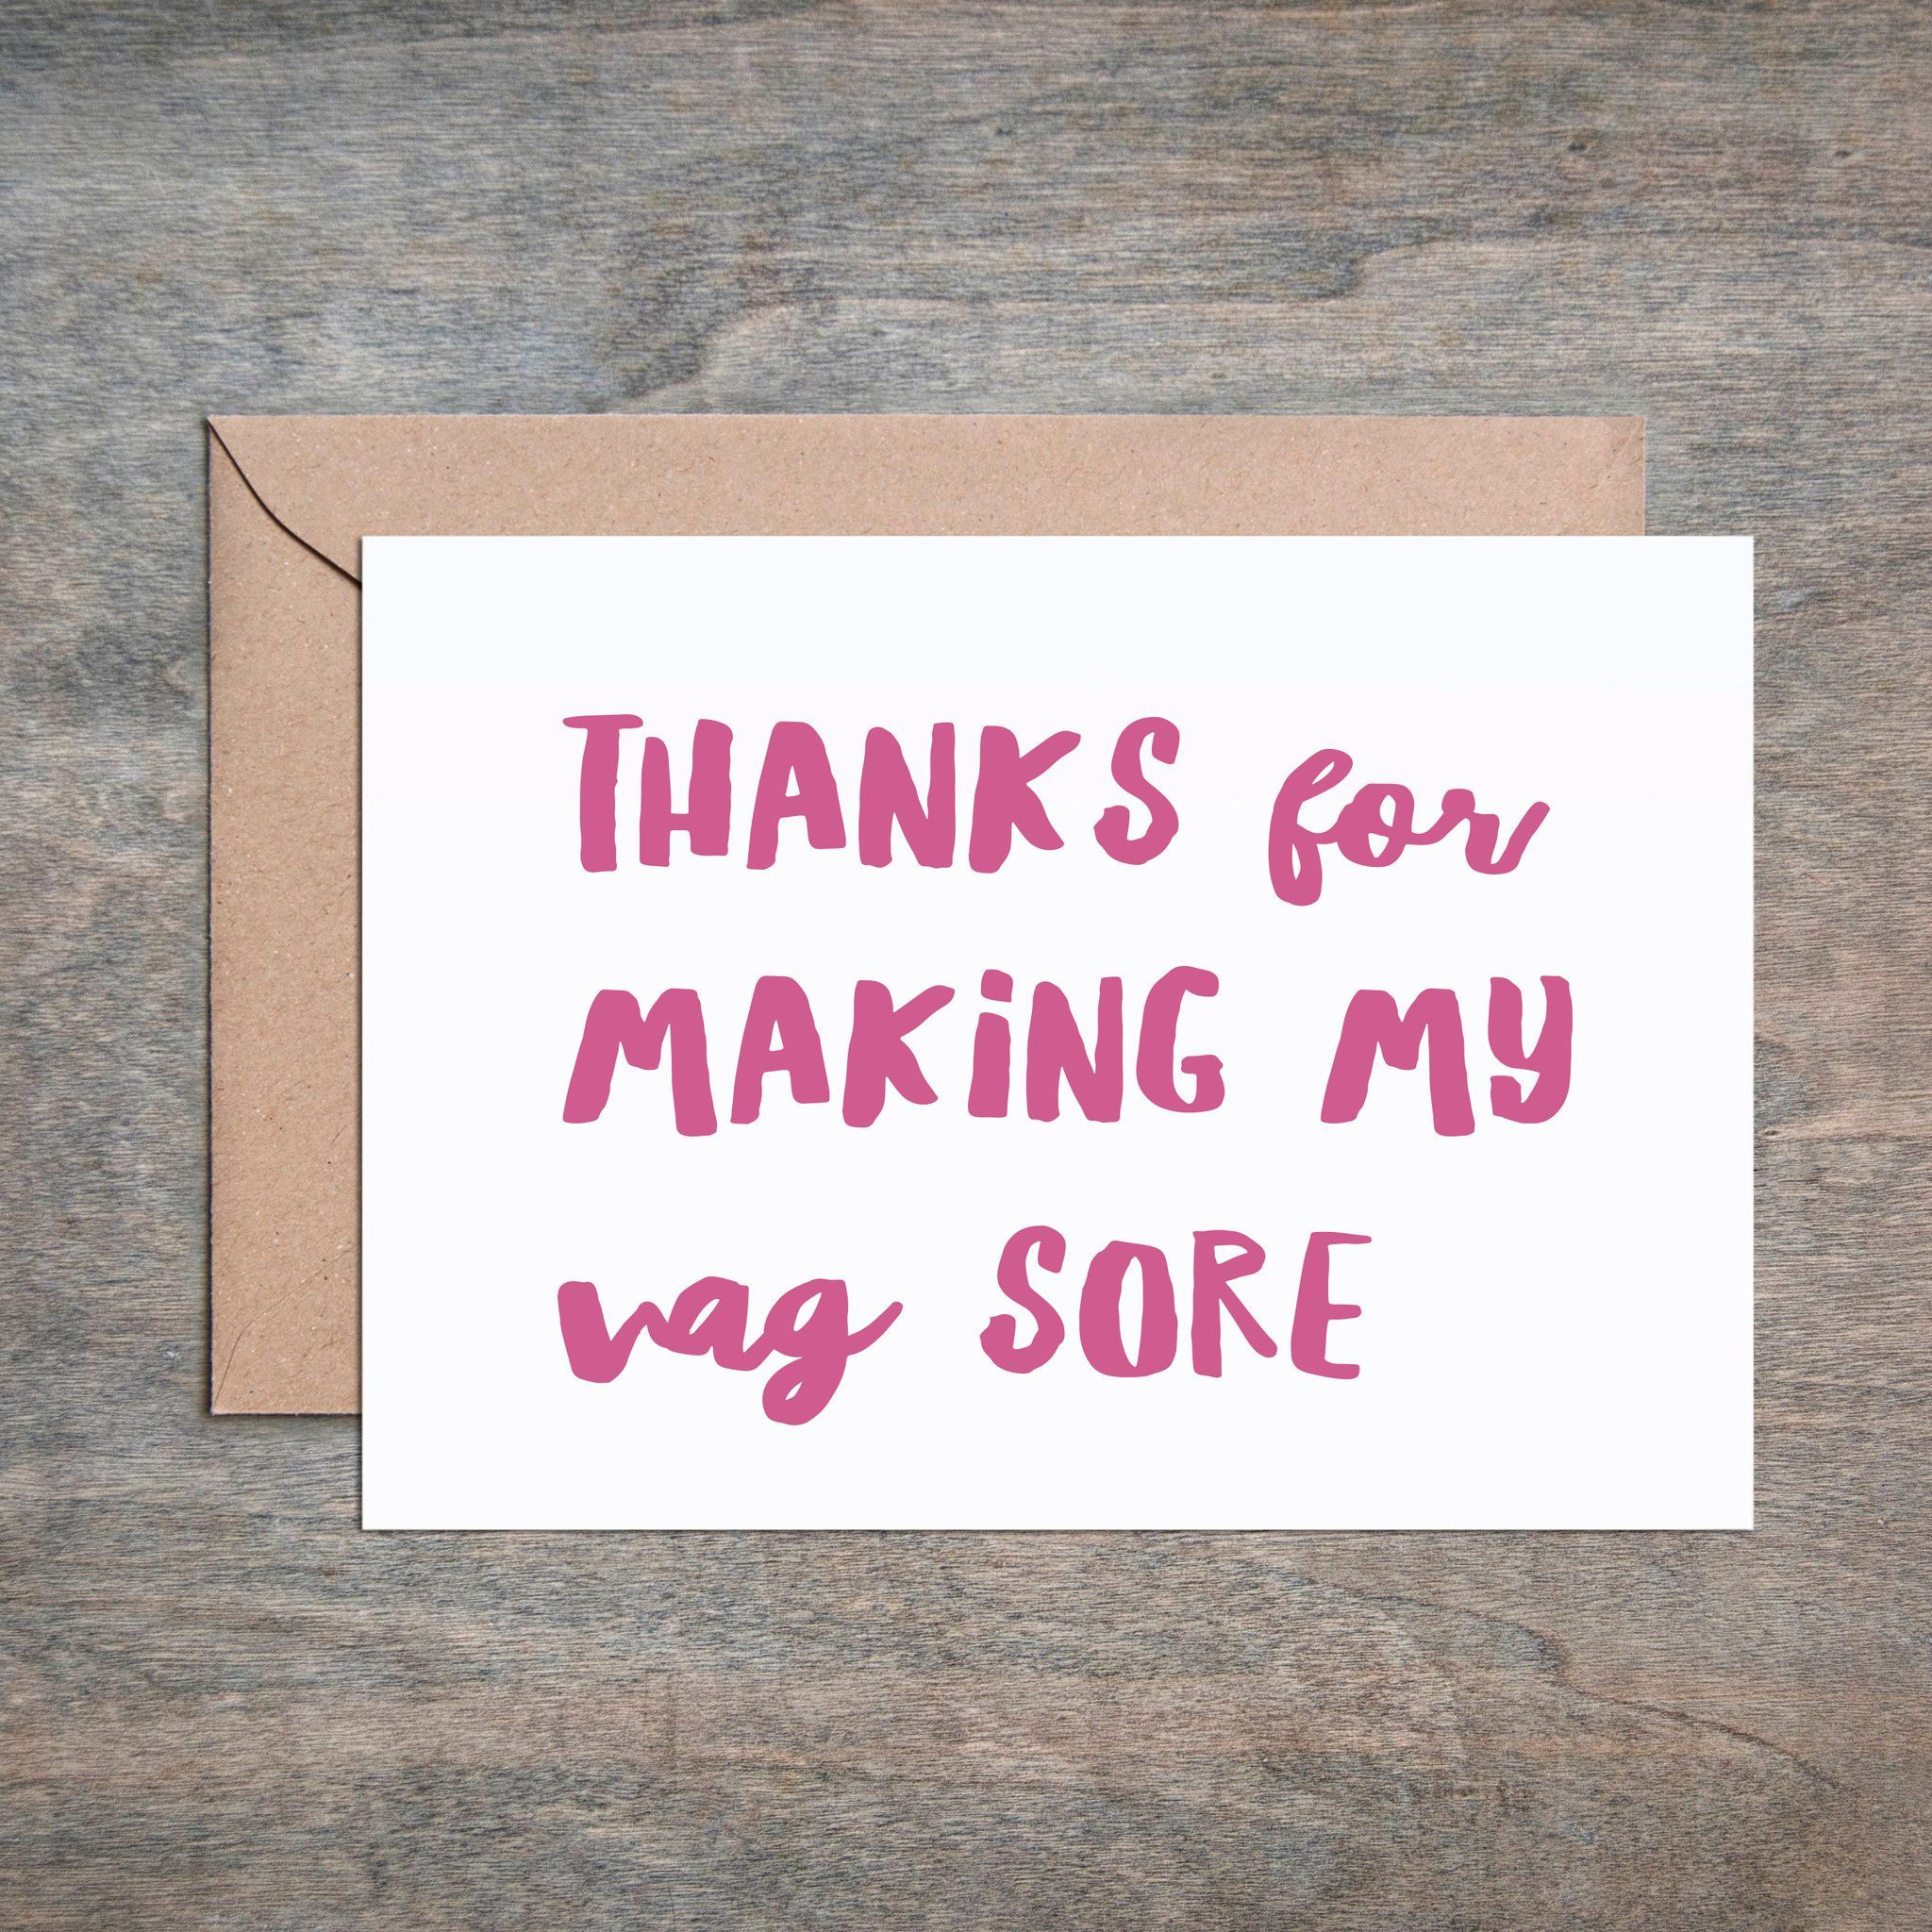 Thanks For Making My Vag Sore. Funny Love Card. Funny